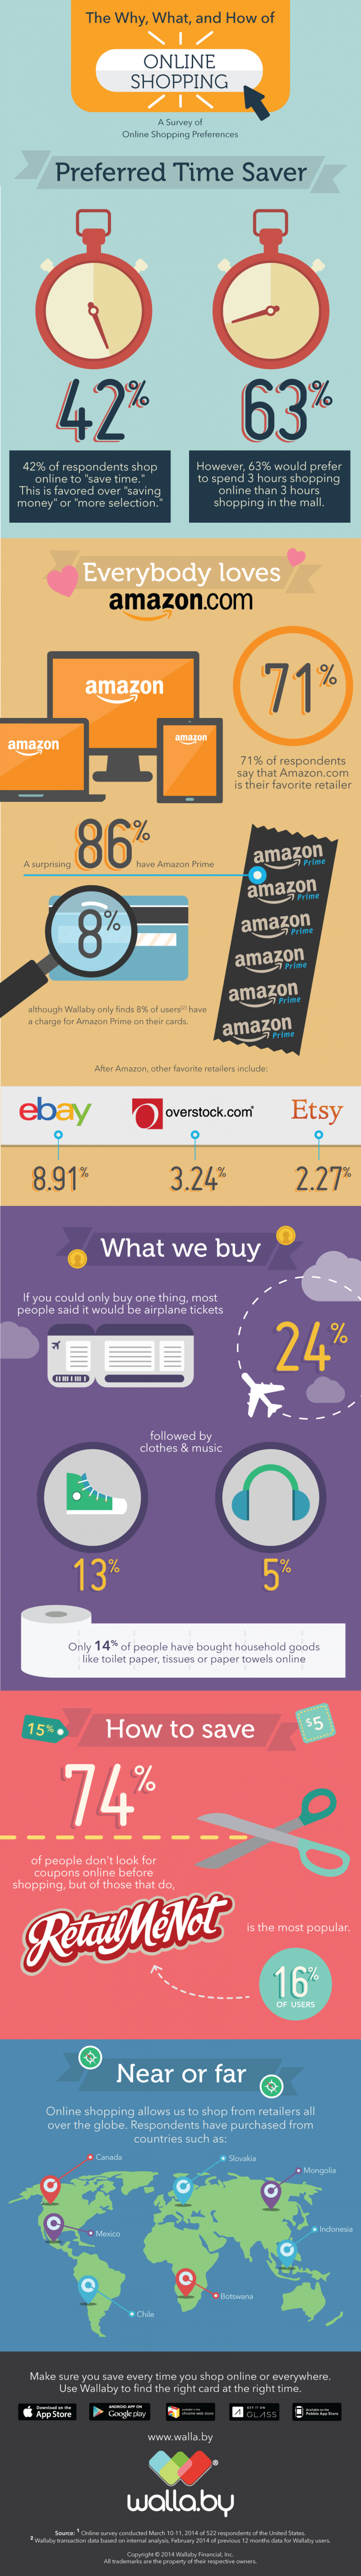 The Why, What, and How of Online Shopping Infographic